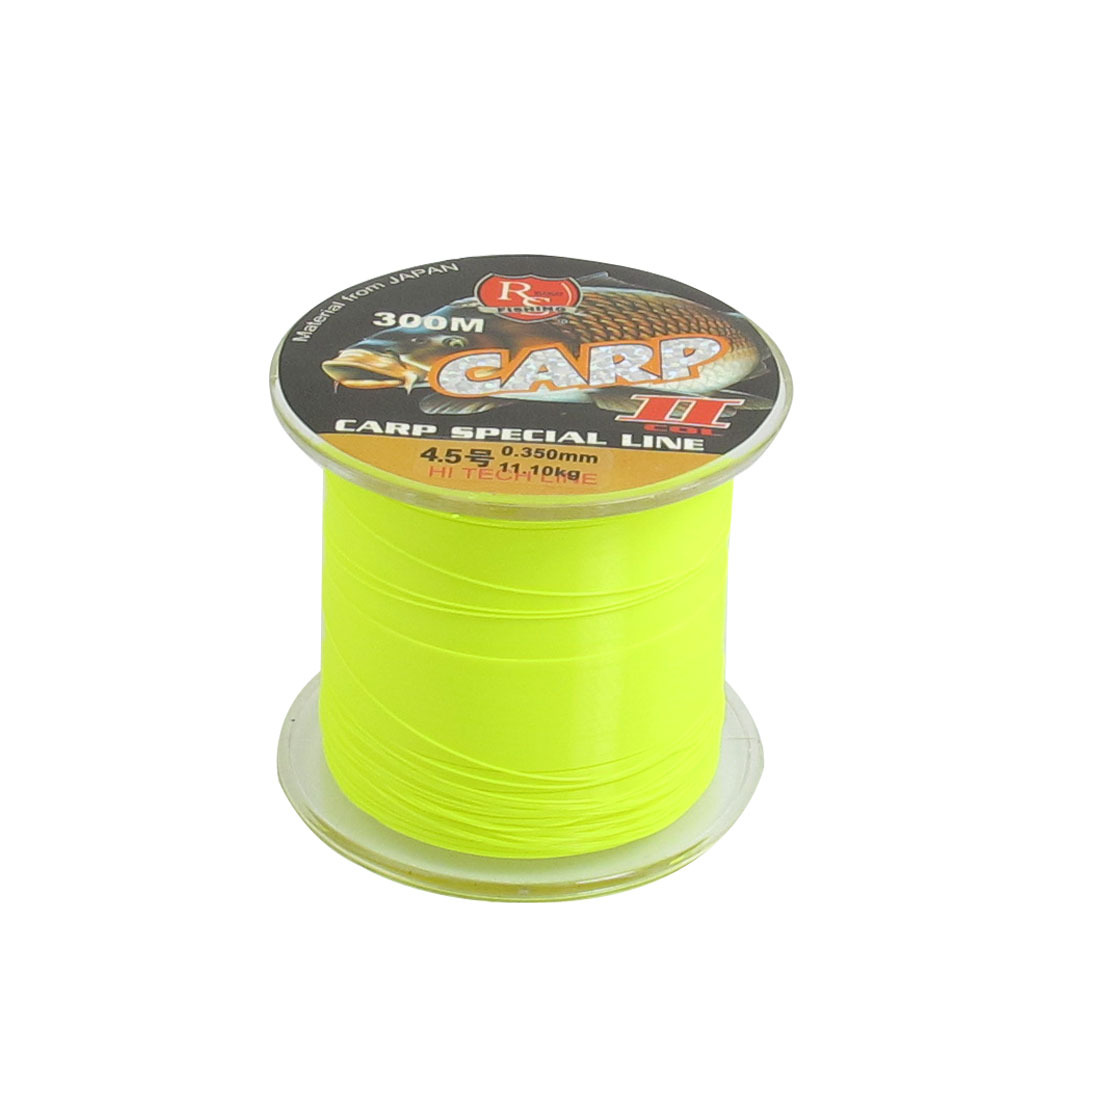 0.350mm Diameter 11.1Kg Yellow Green Nylon Freshwater Fishing Spool Line 300M